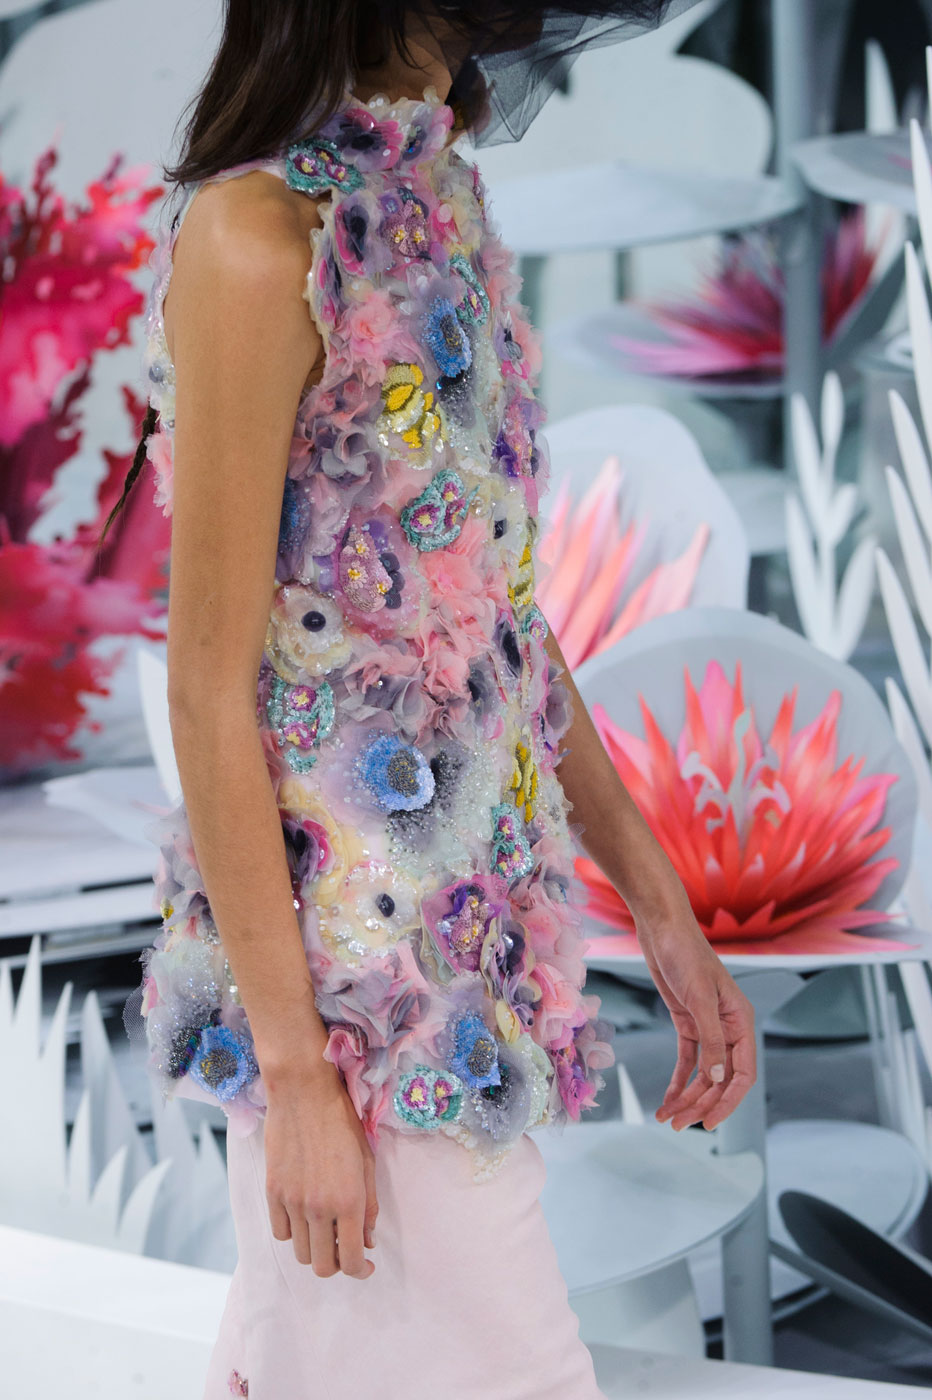 Chanel-fashion-runway-show-close-ups-haute-couture-paris-spring-summer-2015-the-impression-122